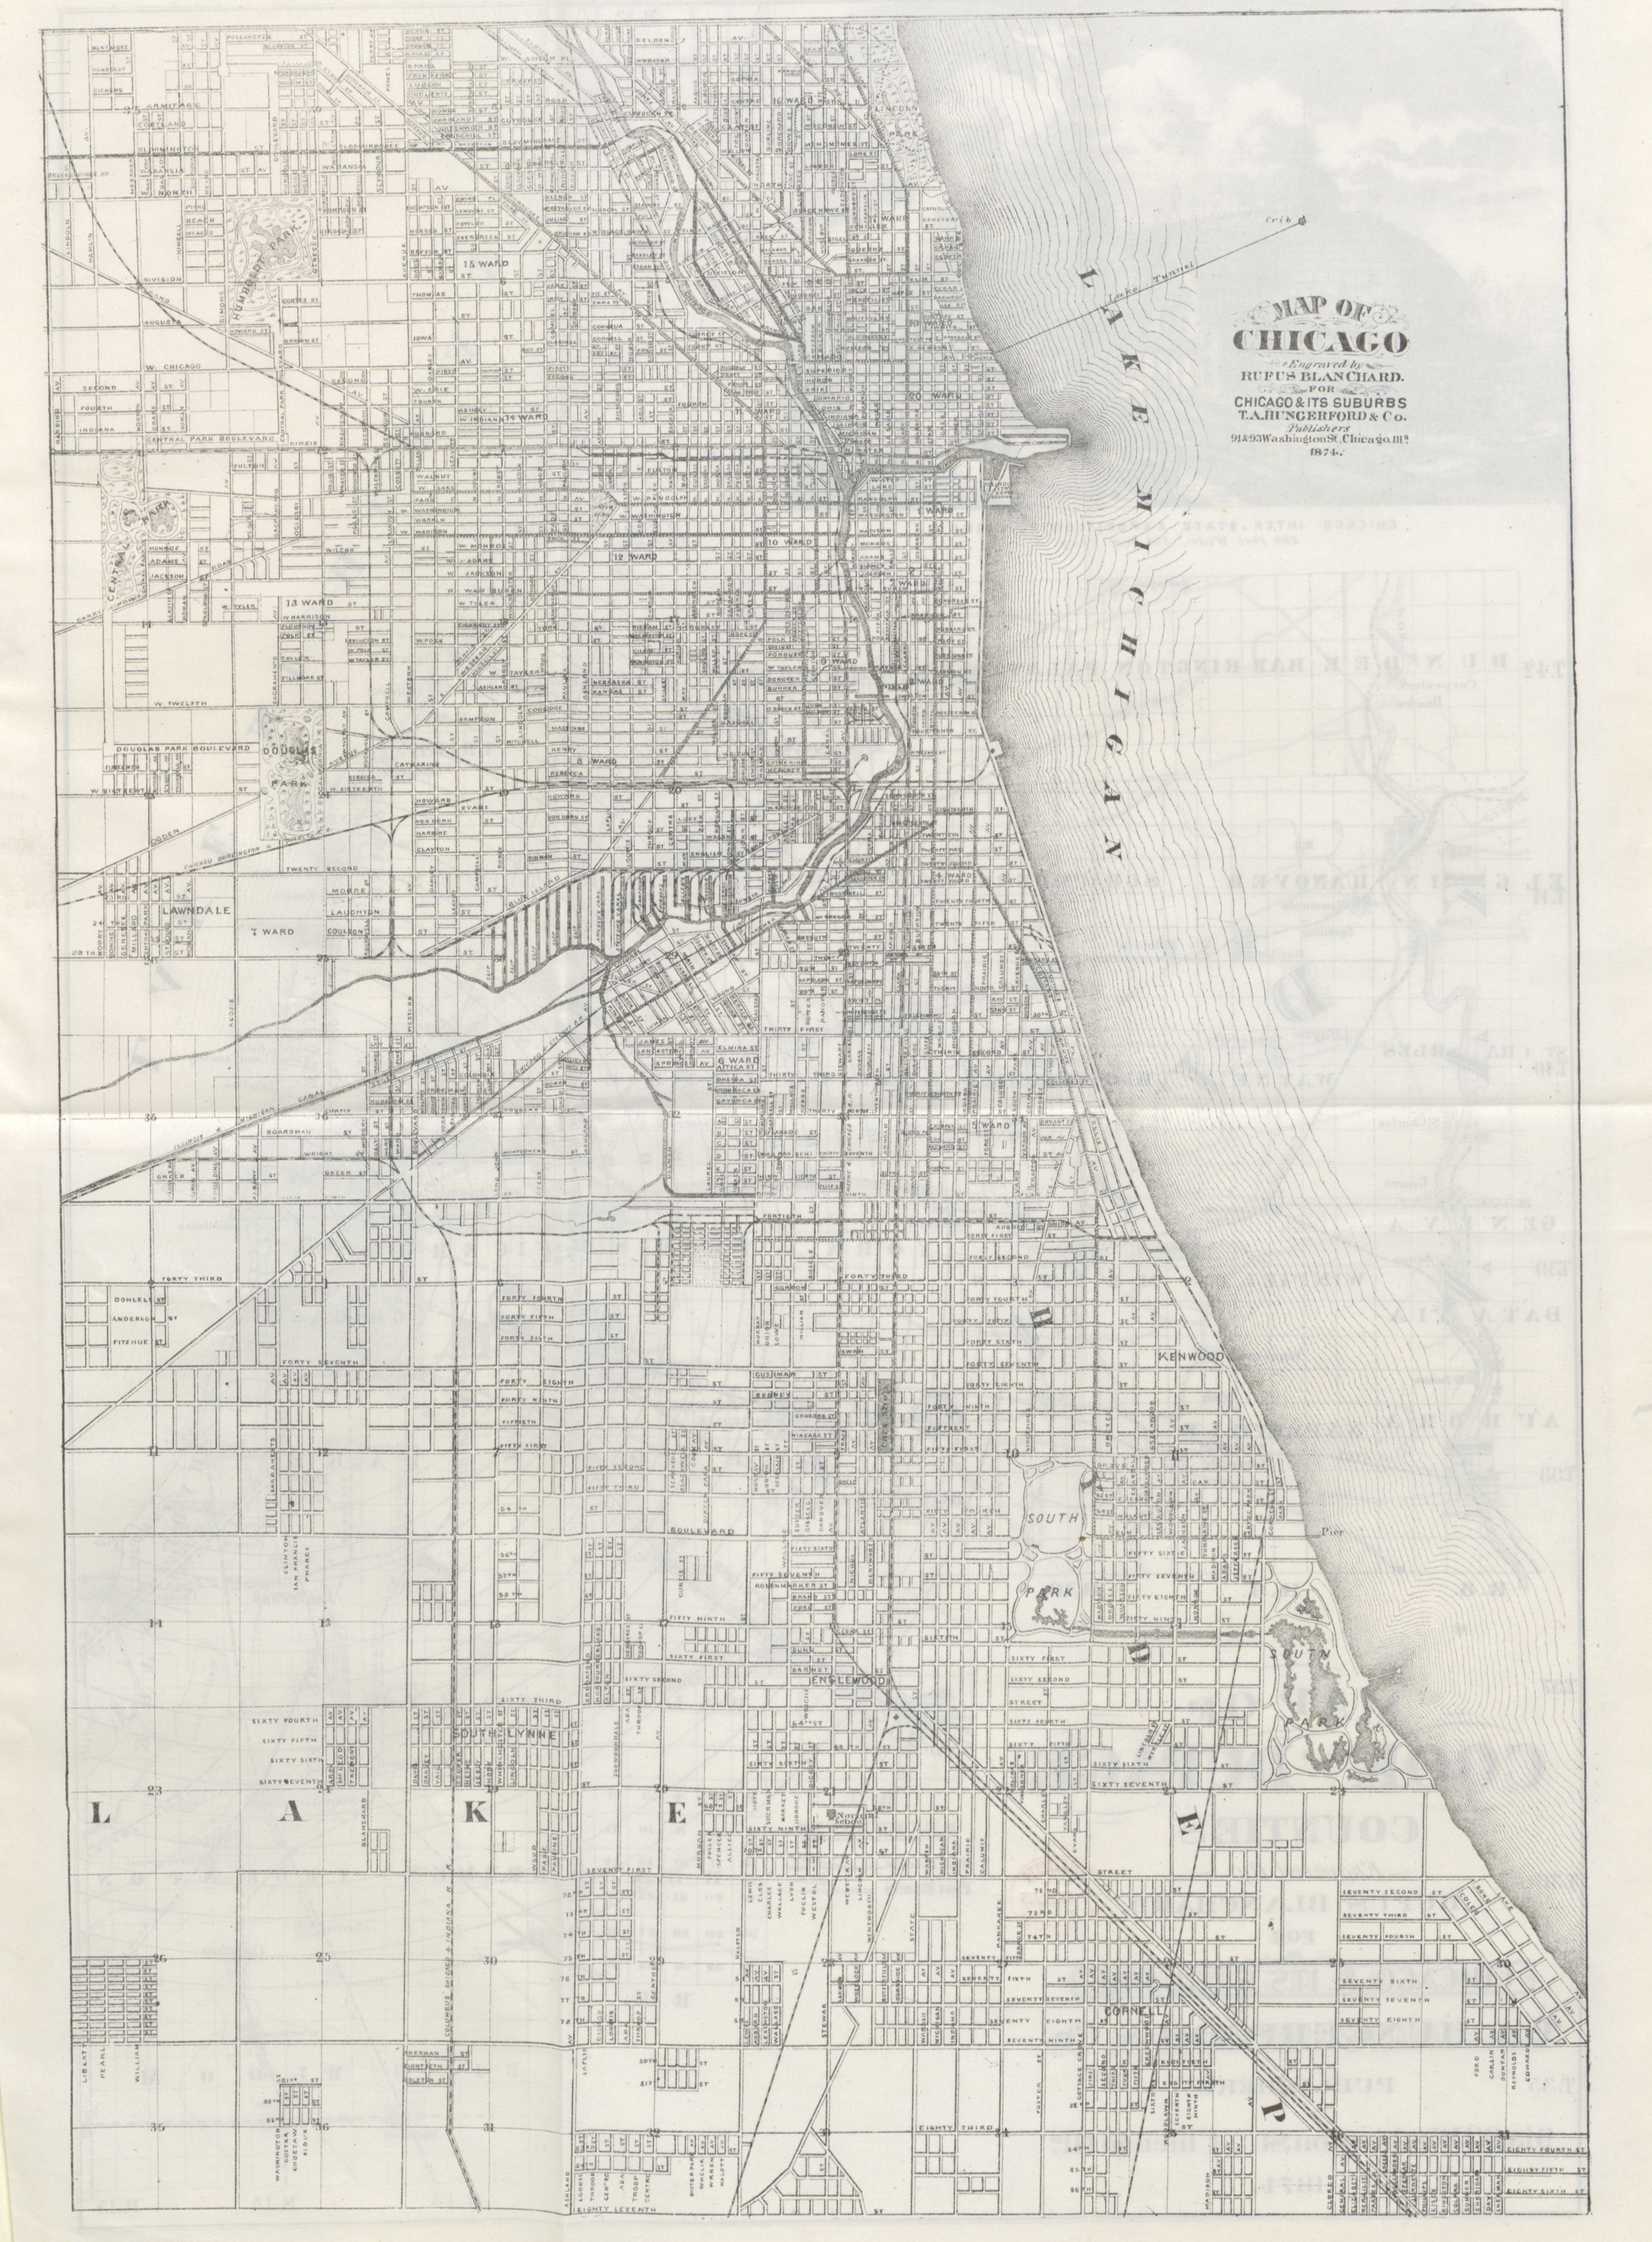 'Map of Chicago' from 'Chicago and its Suburbs', 1874 (c) British Library Board